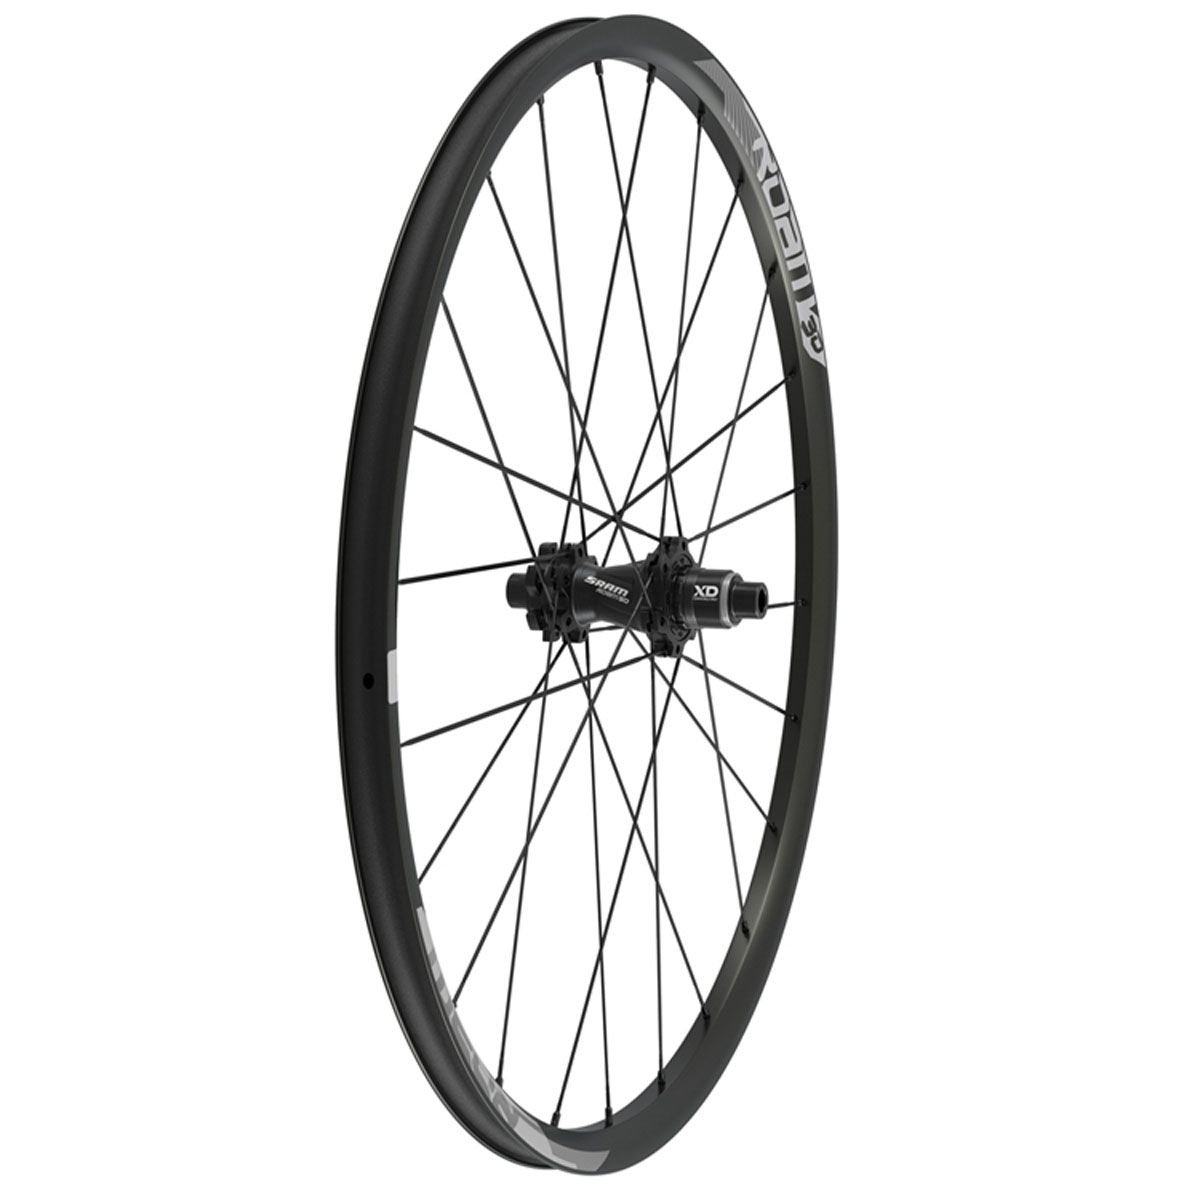 SRAM Roam 30 XD Tubeless Compatible Disc Bicycle Wheel - 29 inch Rear - 00.1918.185.008